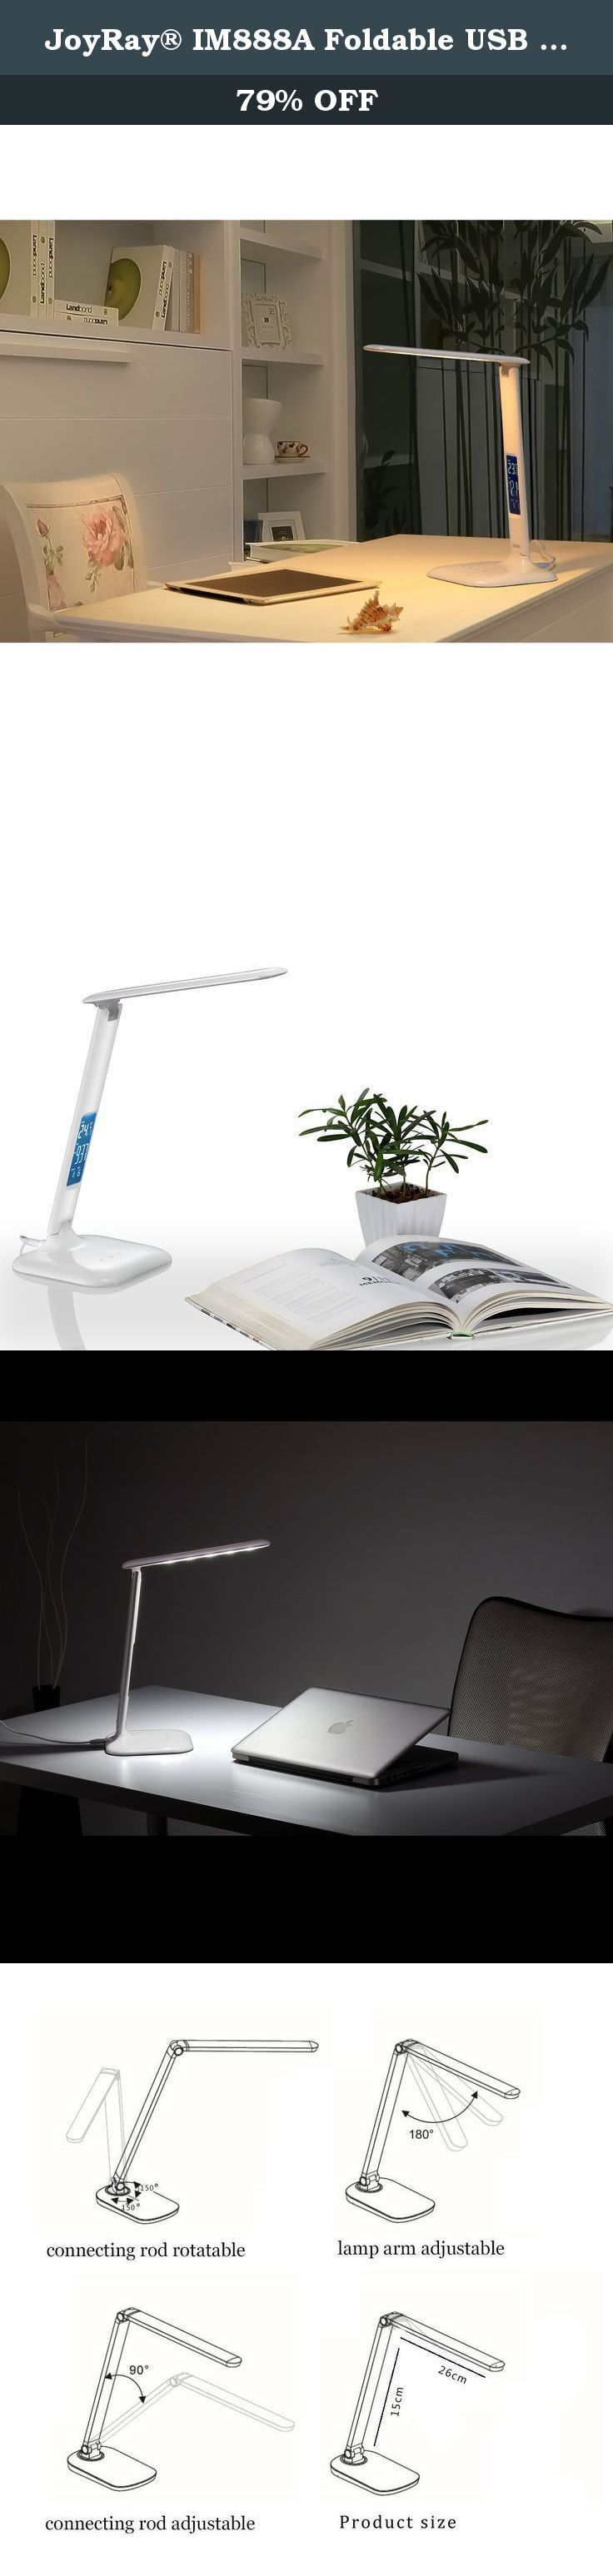 JoyRay® IM888A Foldable USB Rechargeable LED Desk Lamp with Calendar and Thermometer. Specifications: input: DC 5V 500mA Color temperature: 5000-5500Kbr> Maximum Brightness:350Lm Brightness: 3 Brightness Levels Input voltage: 100-240v Output voltage: 12V 1A Material: ASB Product Size: 17.5x12x70.2cm (LxWxH) Maximum power: 10W Color Rendering Index: >80 Illuminance (30CM): >1000 LUX Package list: LED Table Light x1 Charging Cable x1 Power Adapter x1 User Instructions x1 Portable It can be...